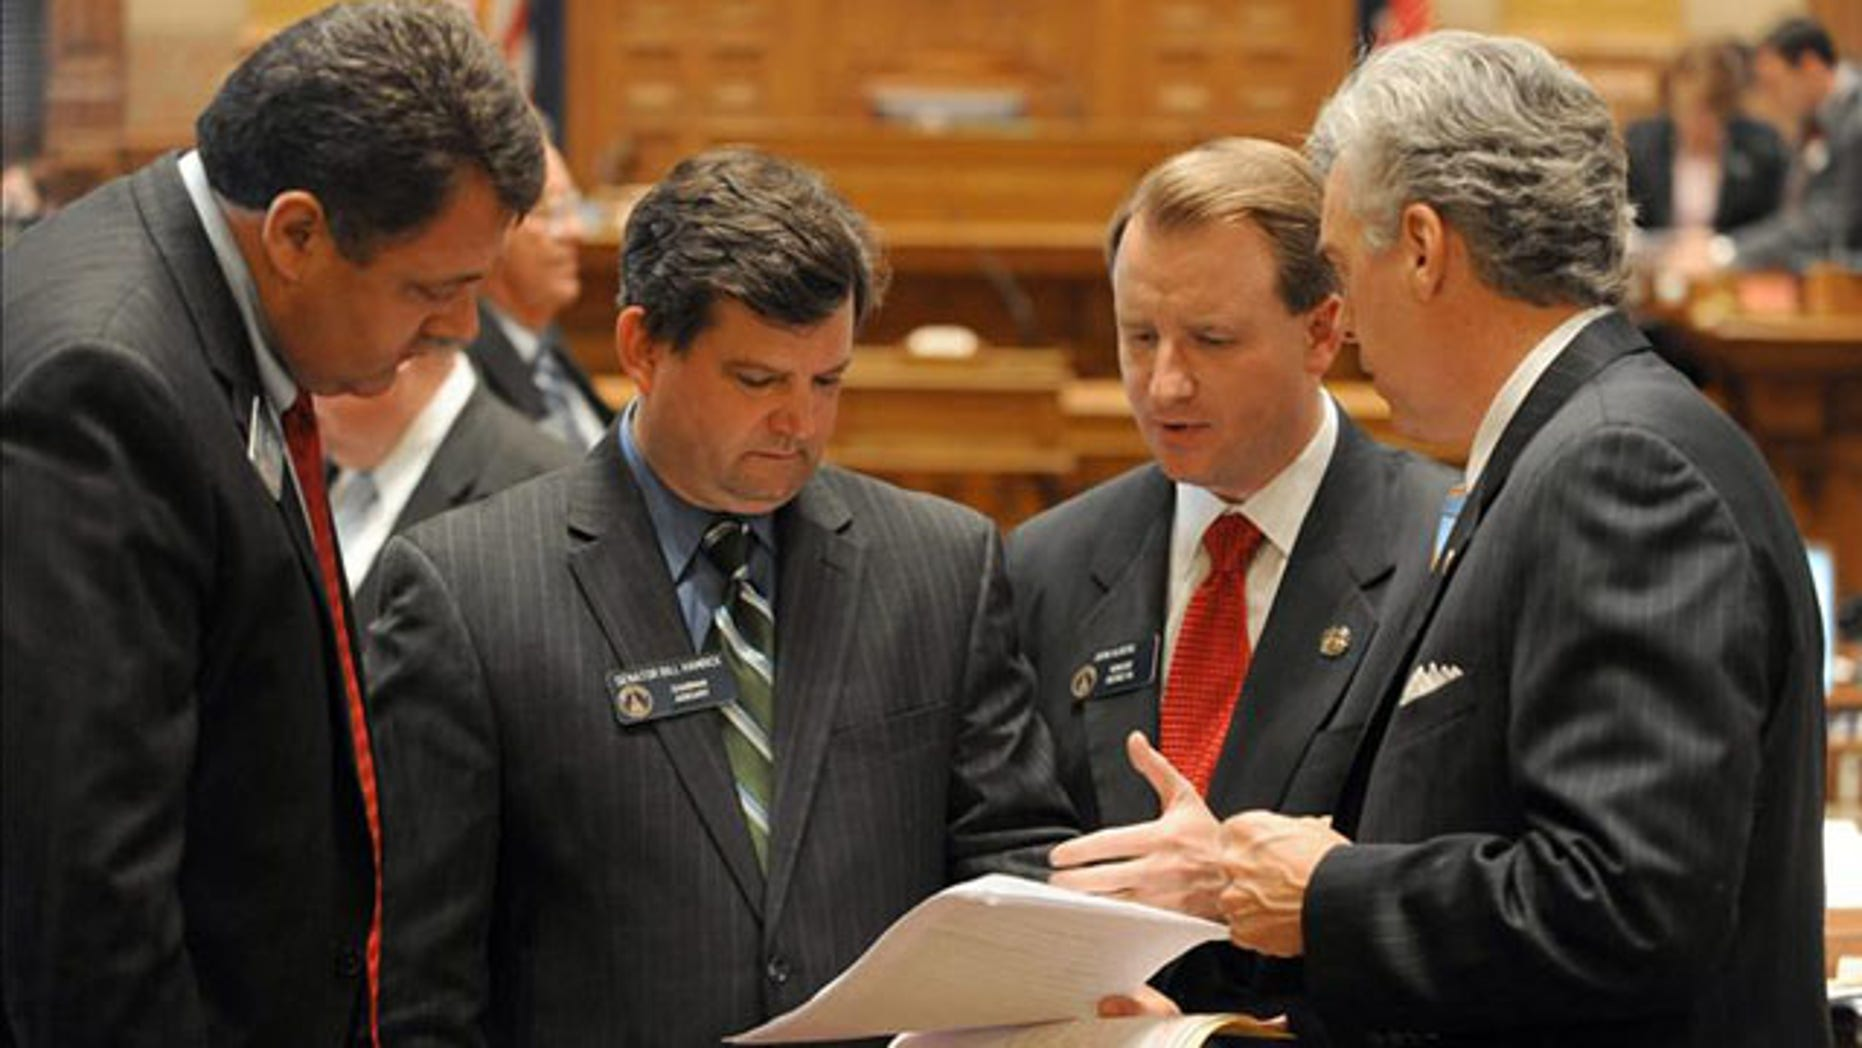 Republican Sens. Steve Gooch, Bill Hamrick, John Albers and Judson Hill, supporters of South Carolina's immigration law. EFE/FILE